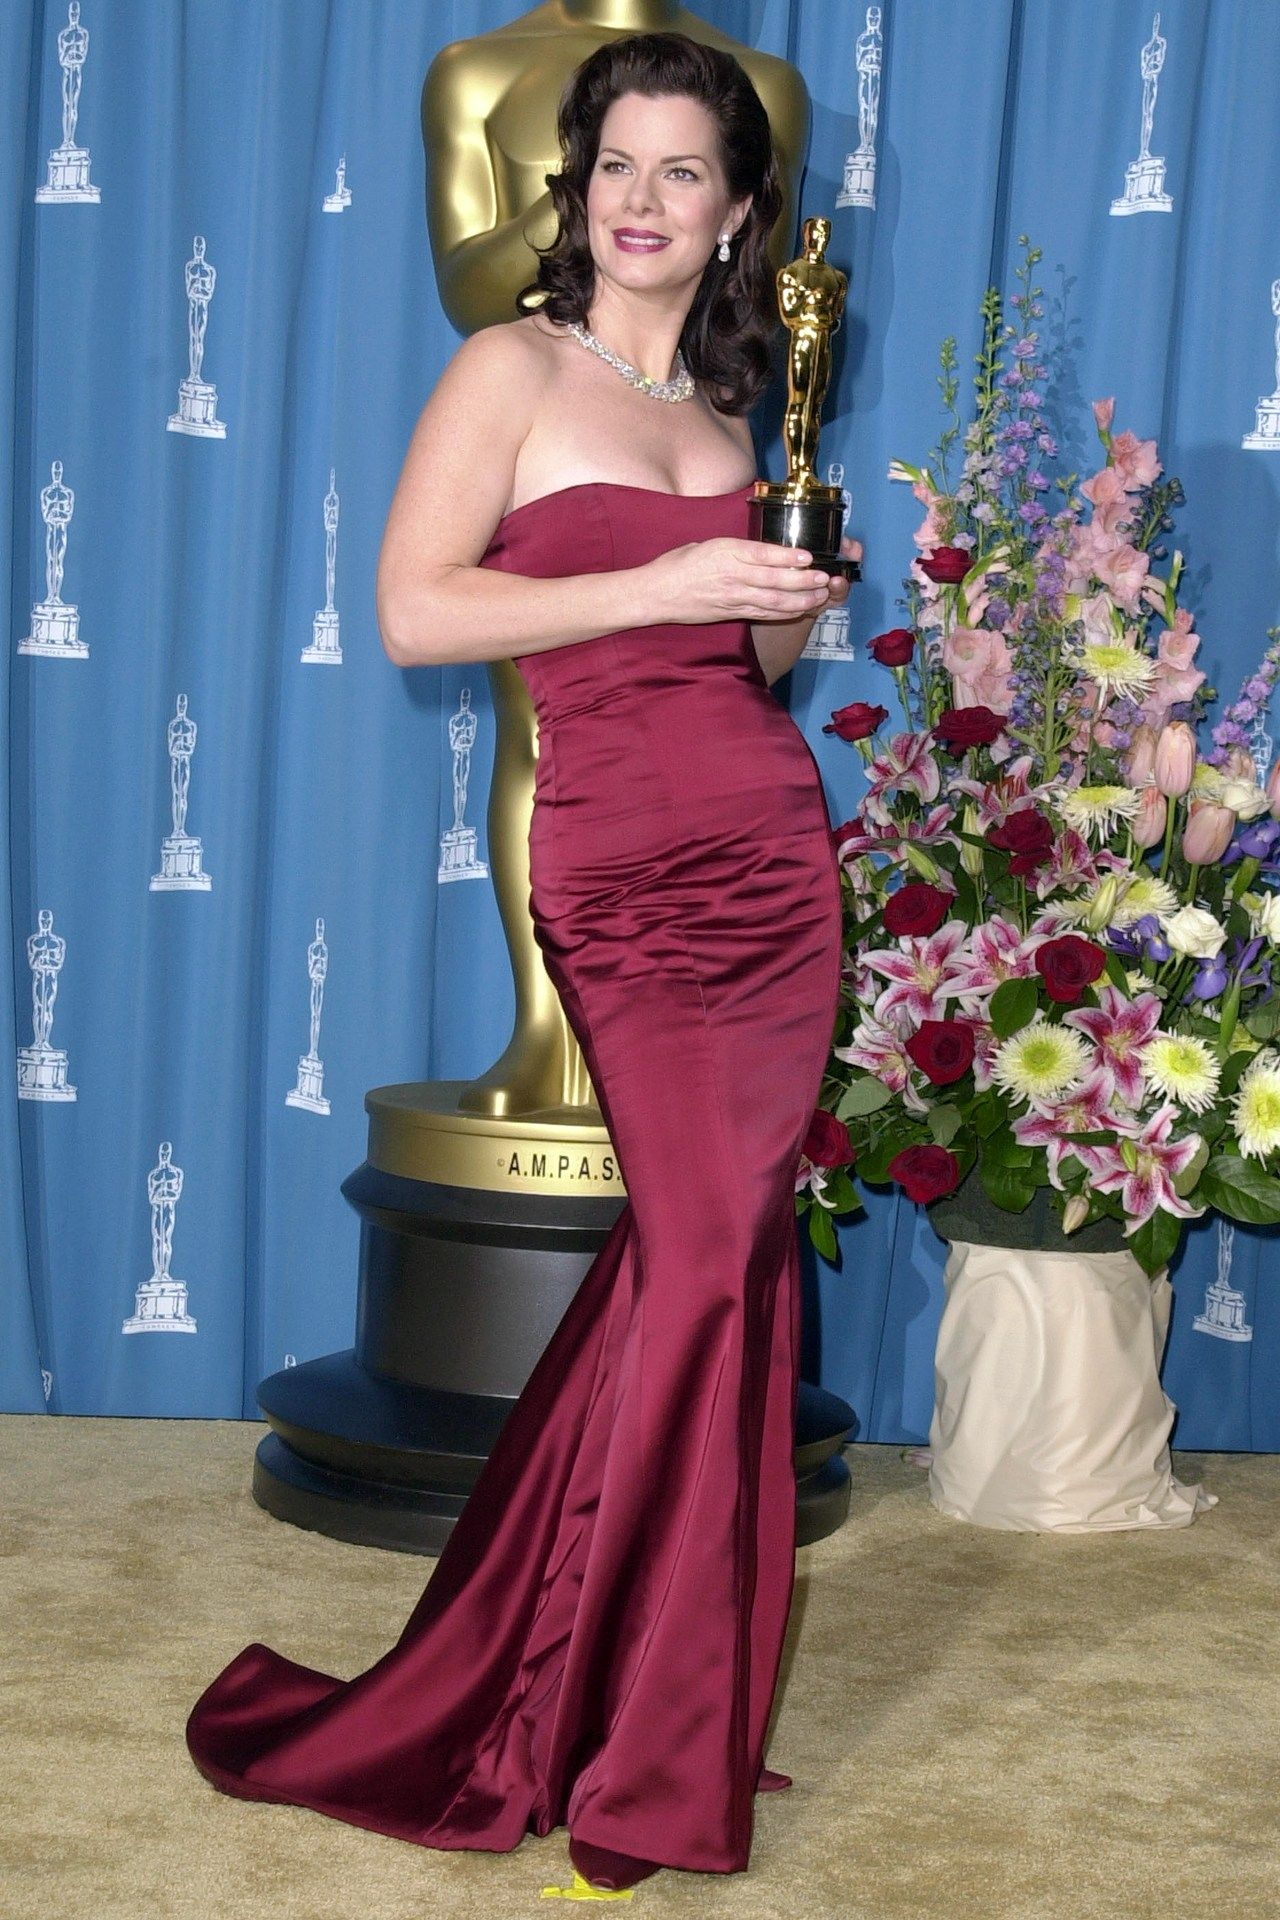 ebff92a7a3760 2001  Best Supporting Actress Winner  Marcia Gay Harden for Pollock The  Dress  A Randolph Duke fishtail dress. Photo By Getty